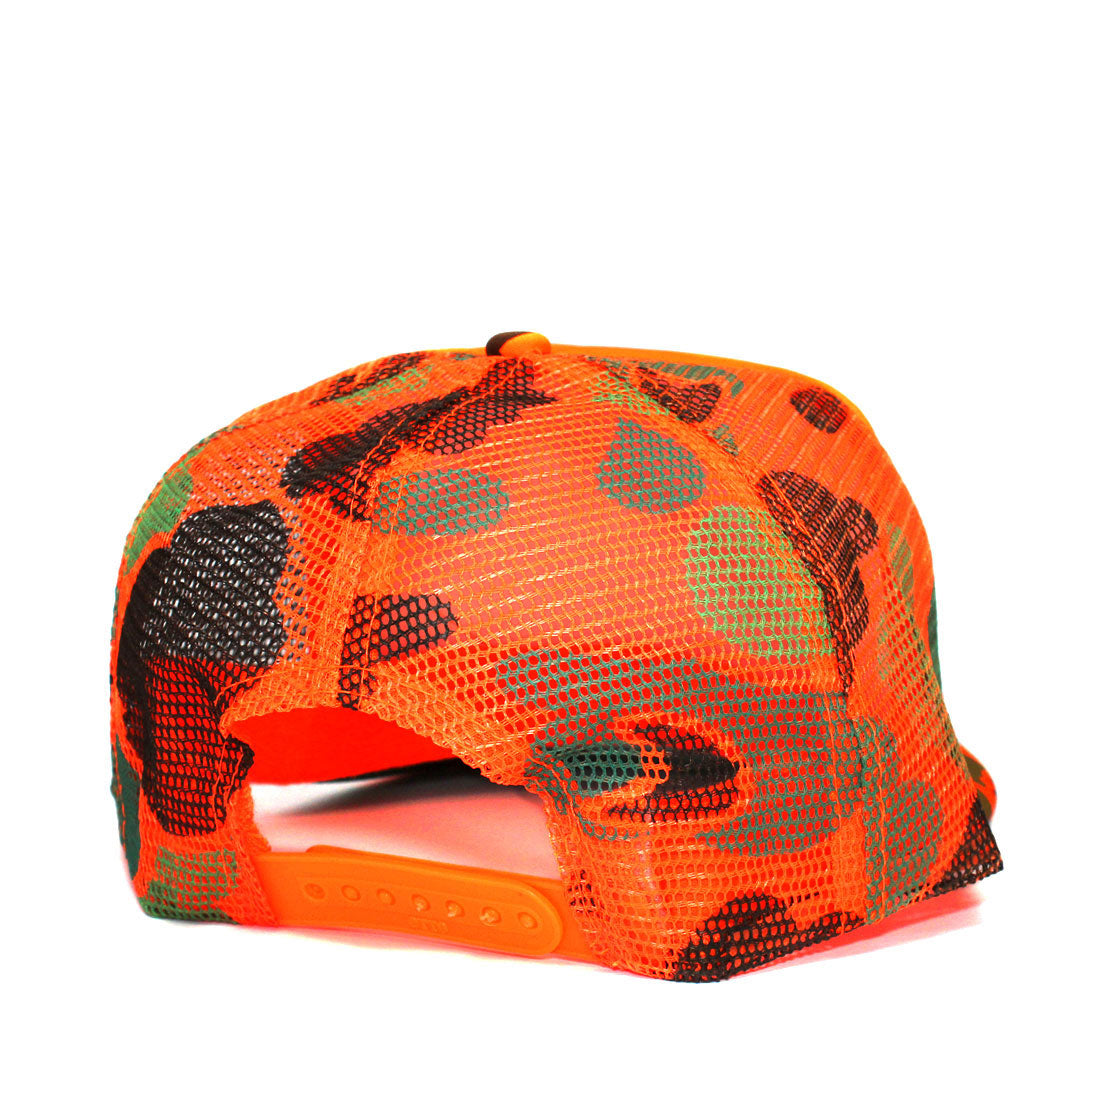 Rewind Curved Bill Trucker Hat in Neon Orange Camo